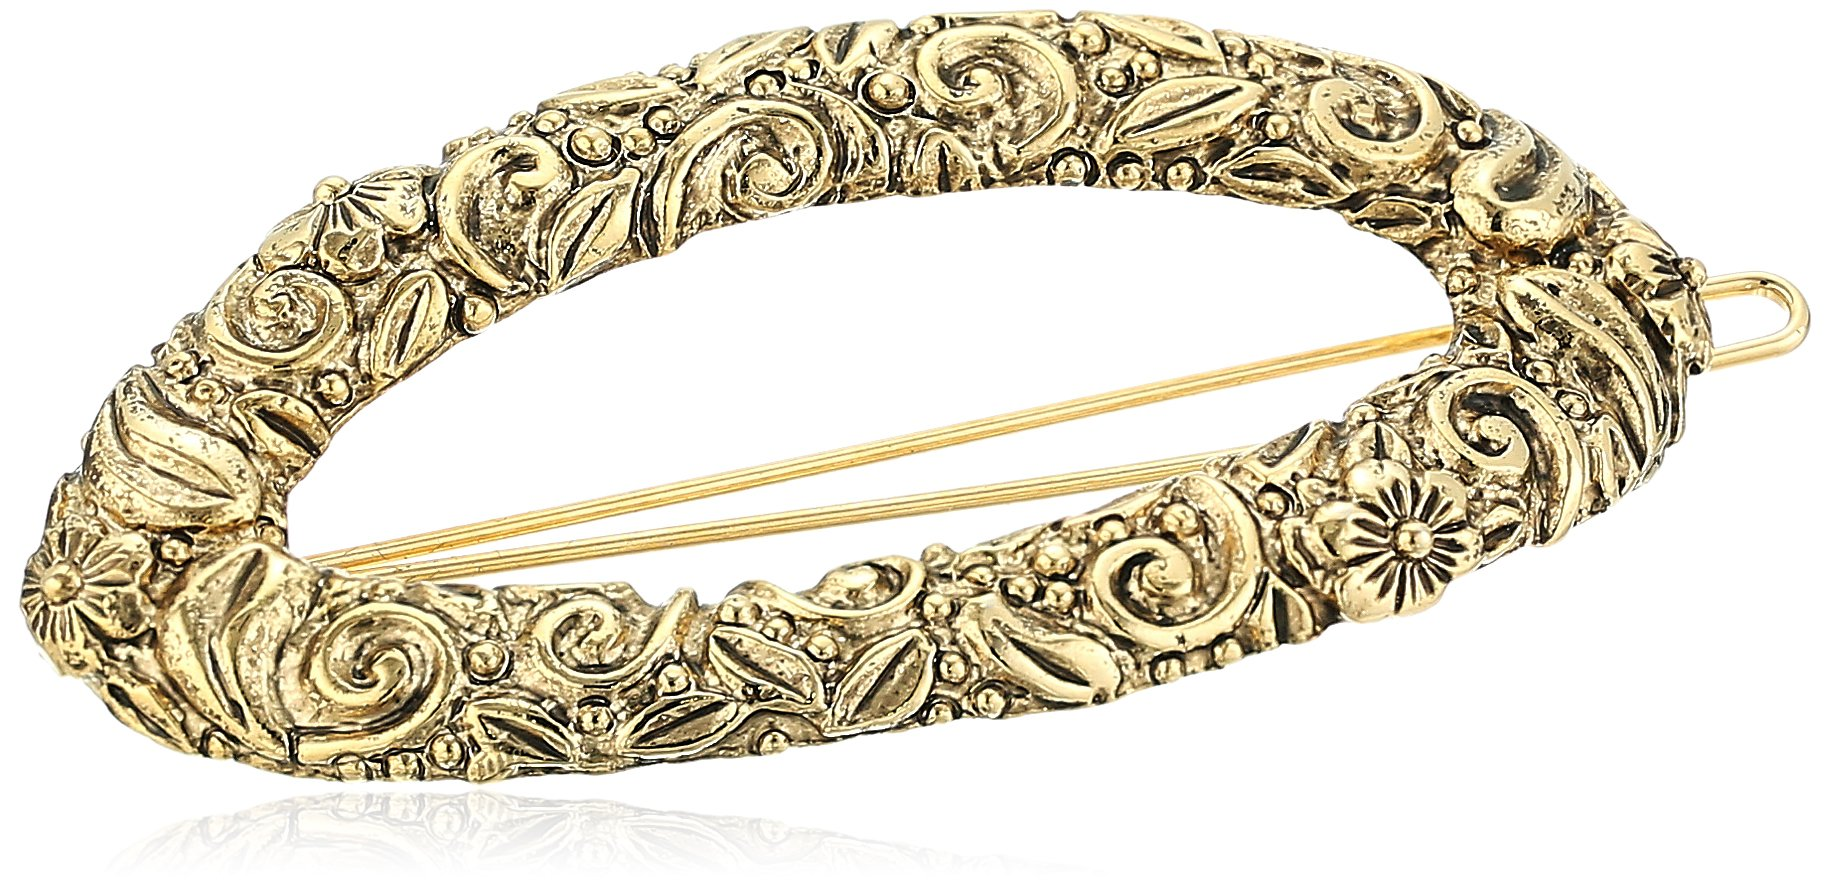 1928 Jewelry Womens Gold-Tone Floral Hair Barrette Accessory, 2.5